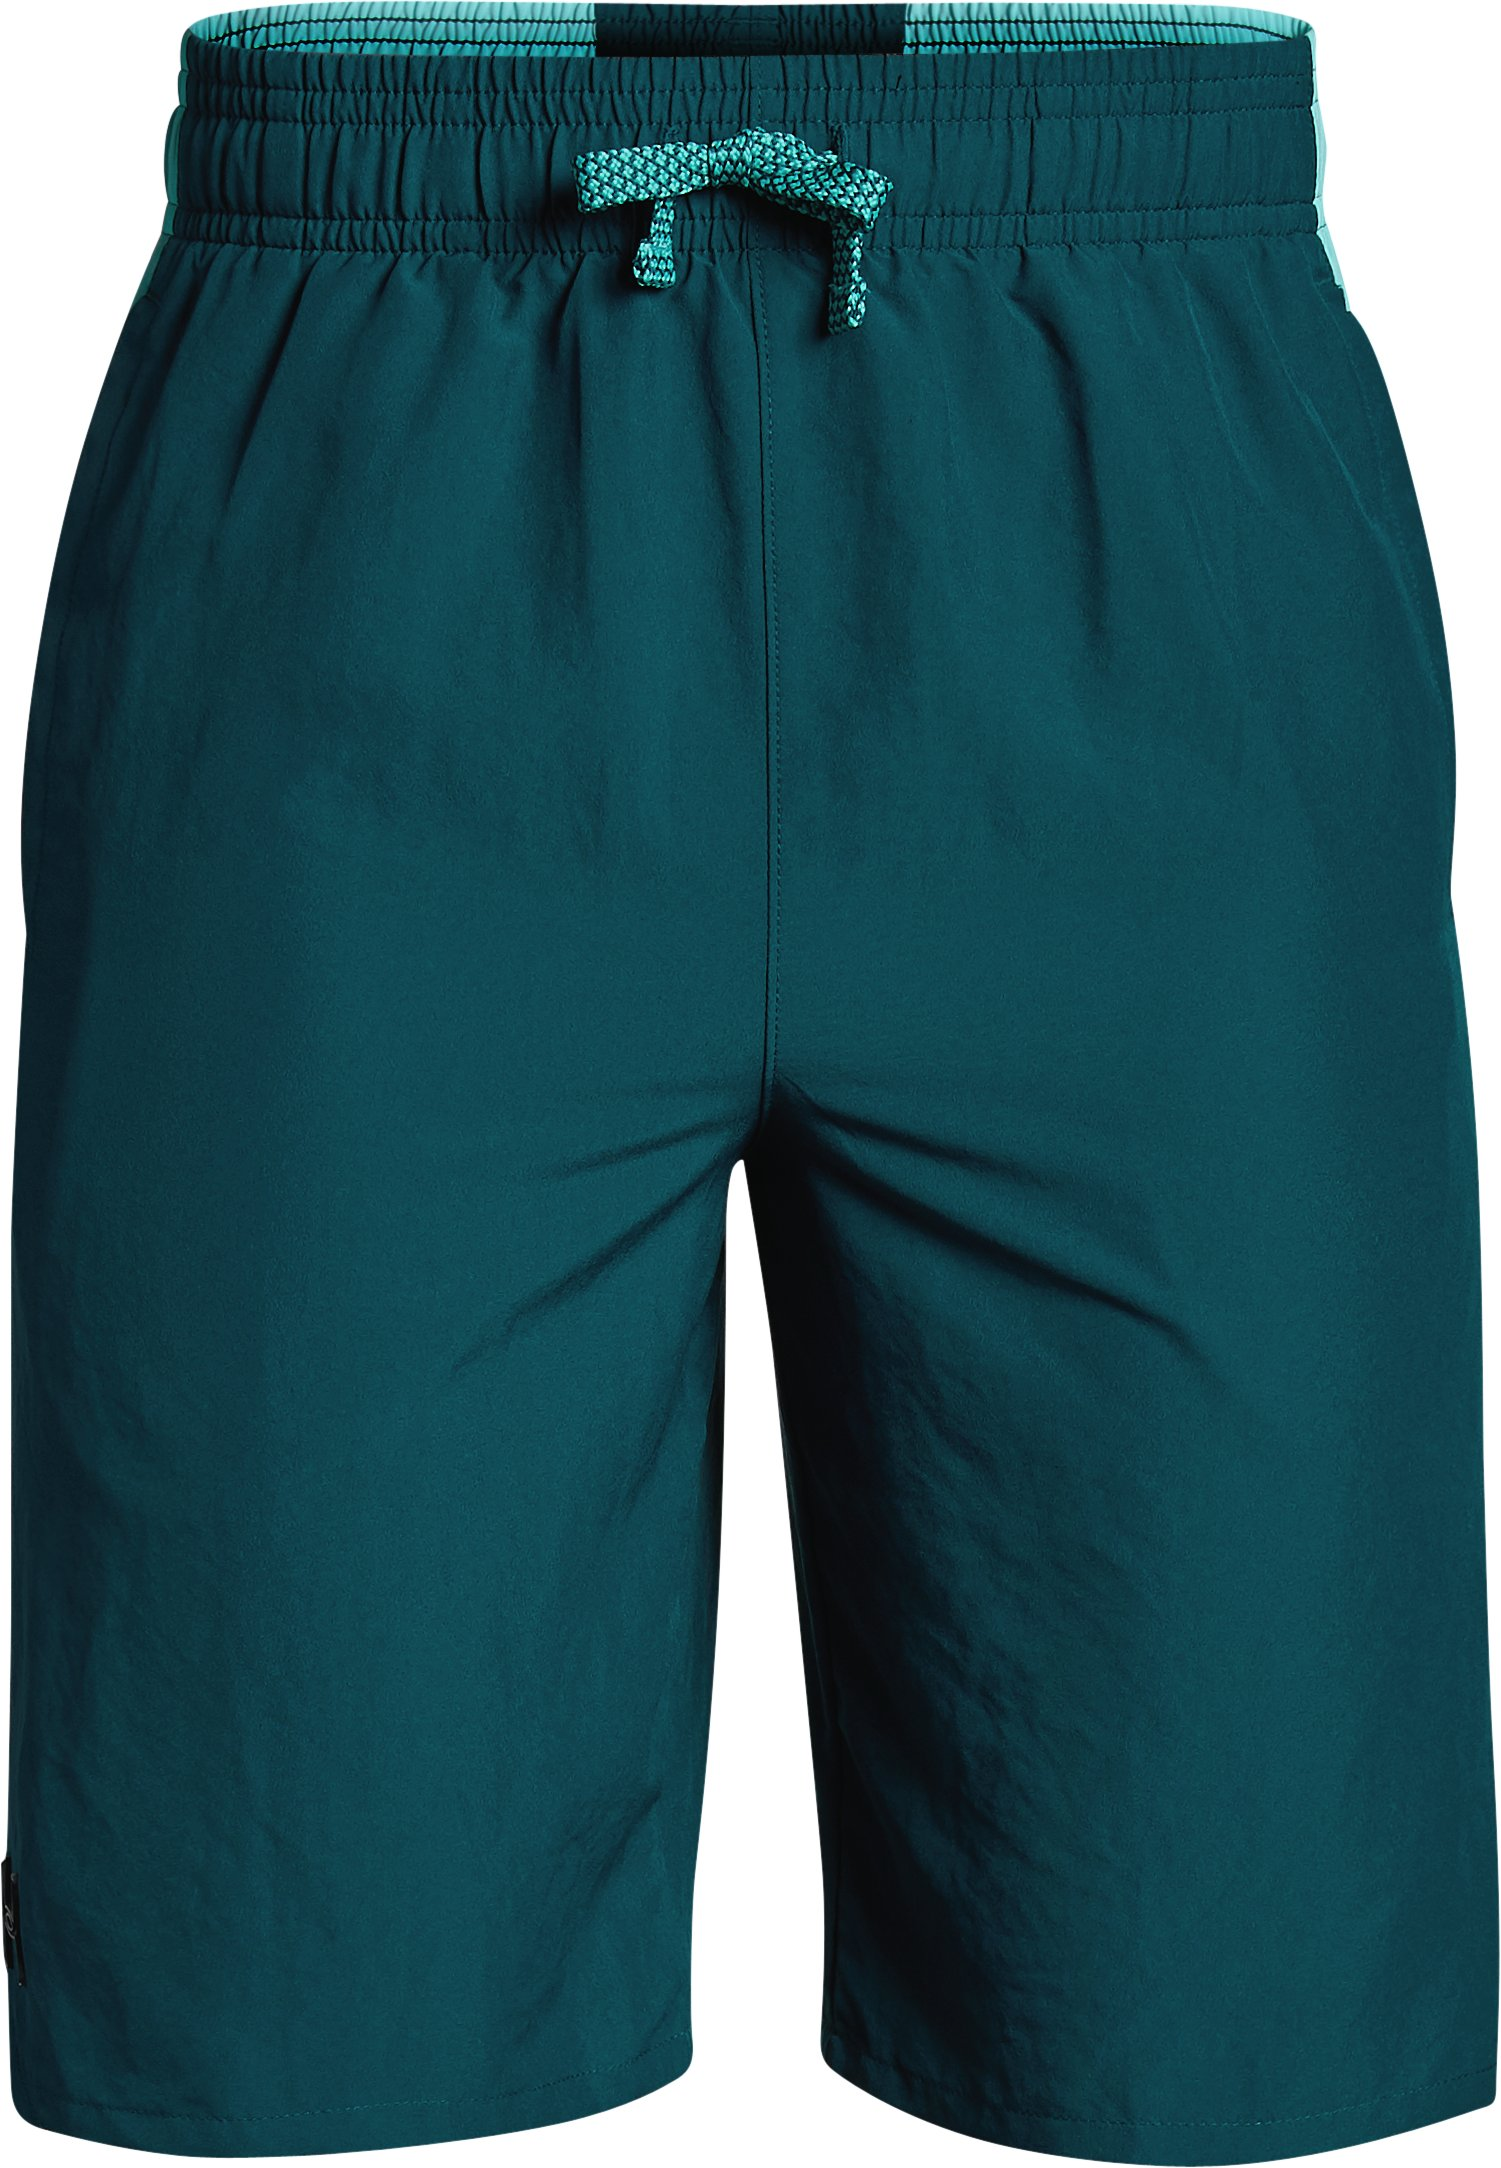 Boys' UA X Level Shorts, TOURMALINE TEAL,